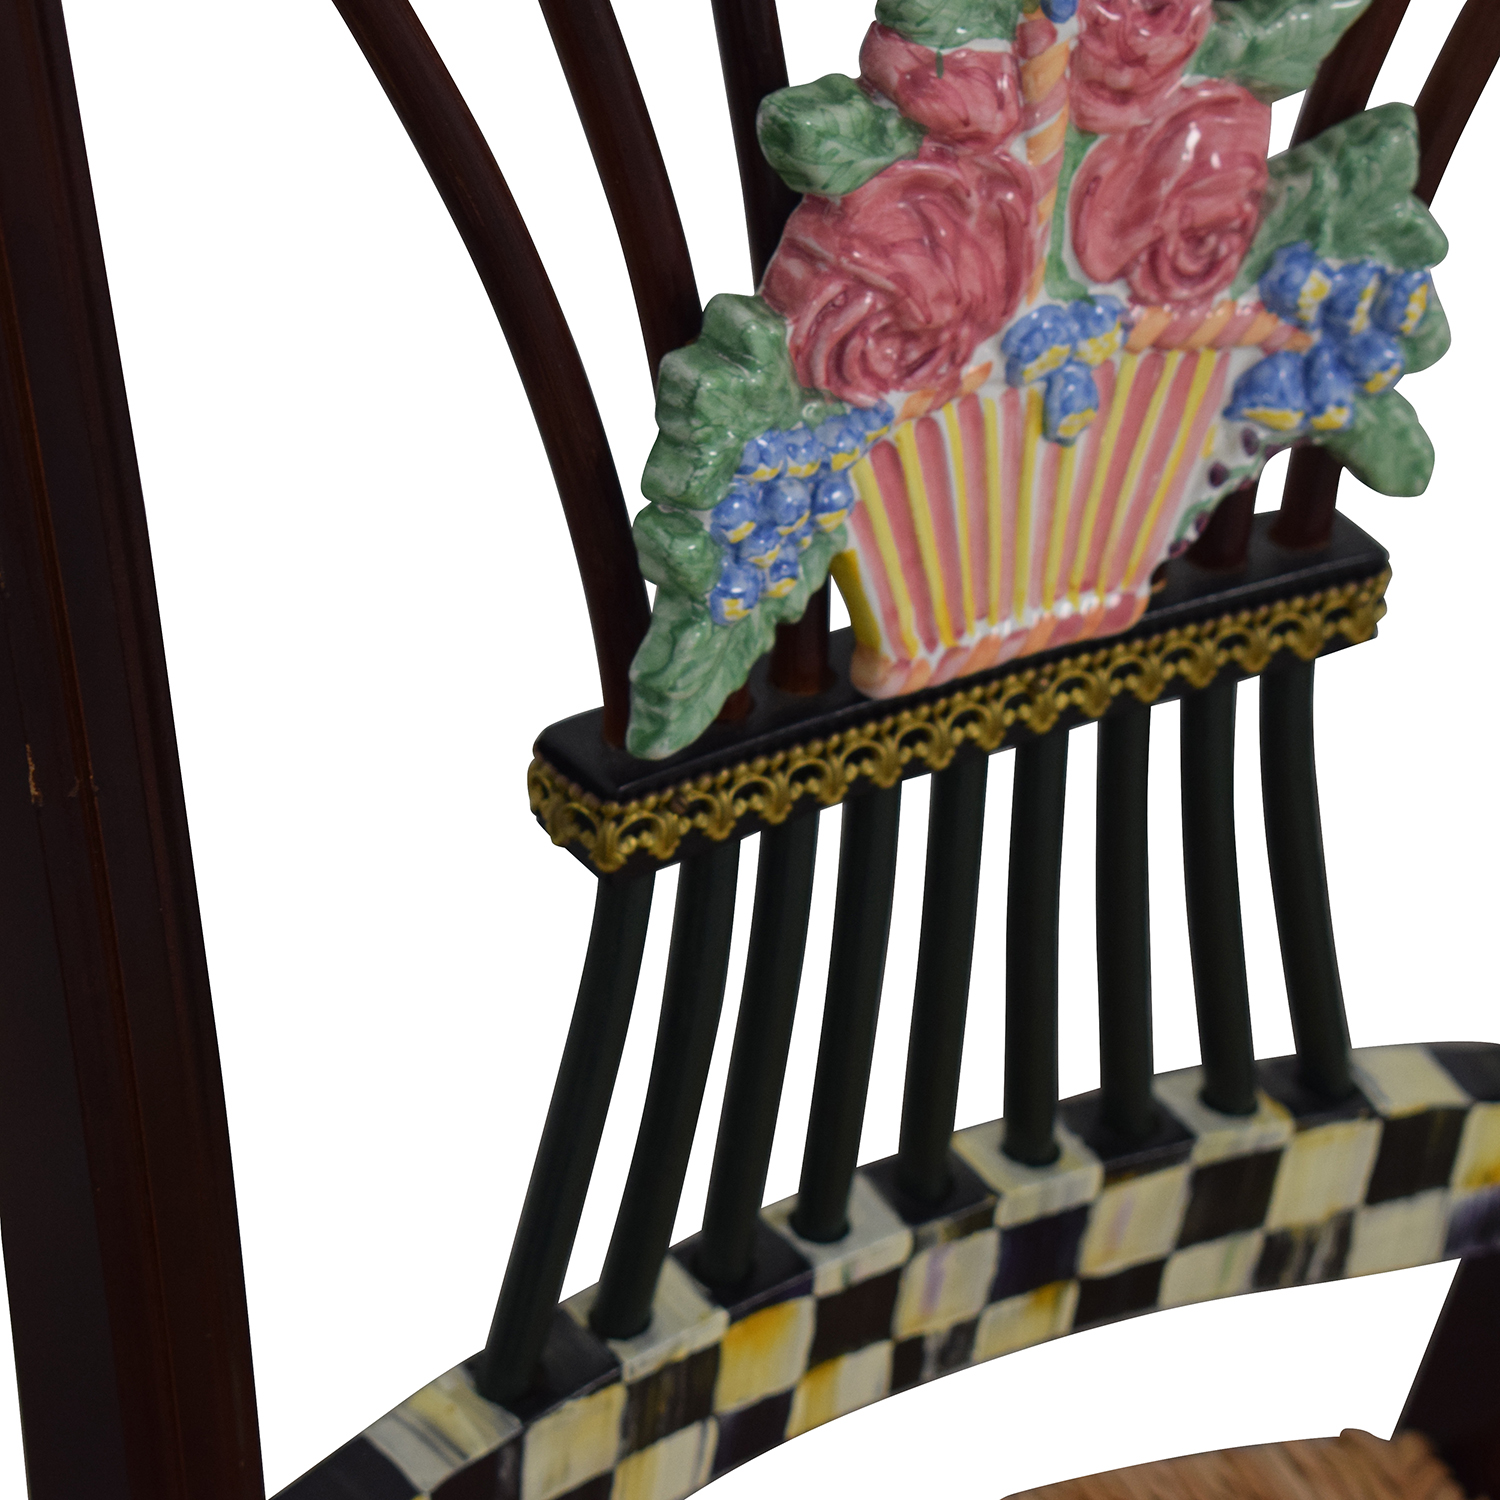 Admirable 83 Off Mackenzie Childs Mackenzie Childs Multi Colored Wicker Dining Chairs Chairs Beatyapartments Chair Design Images Beatyapartmentscom